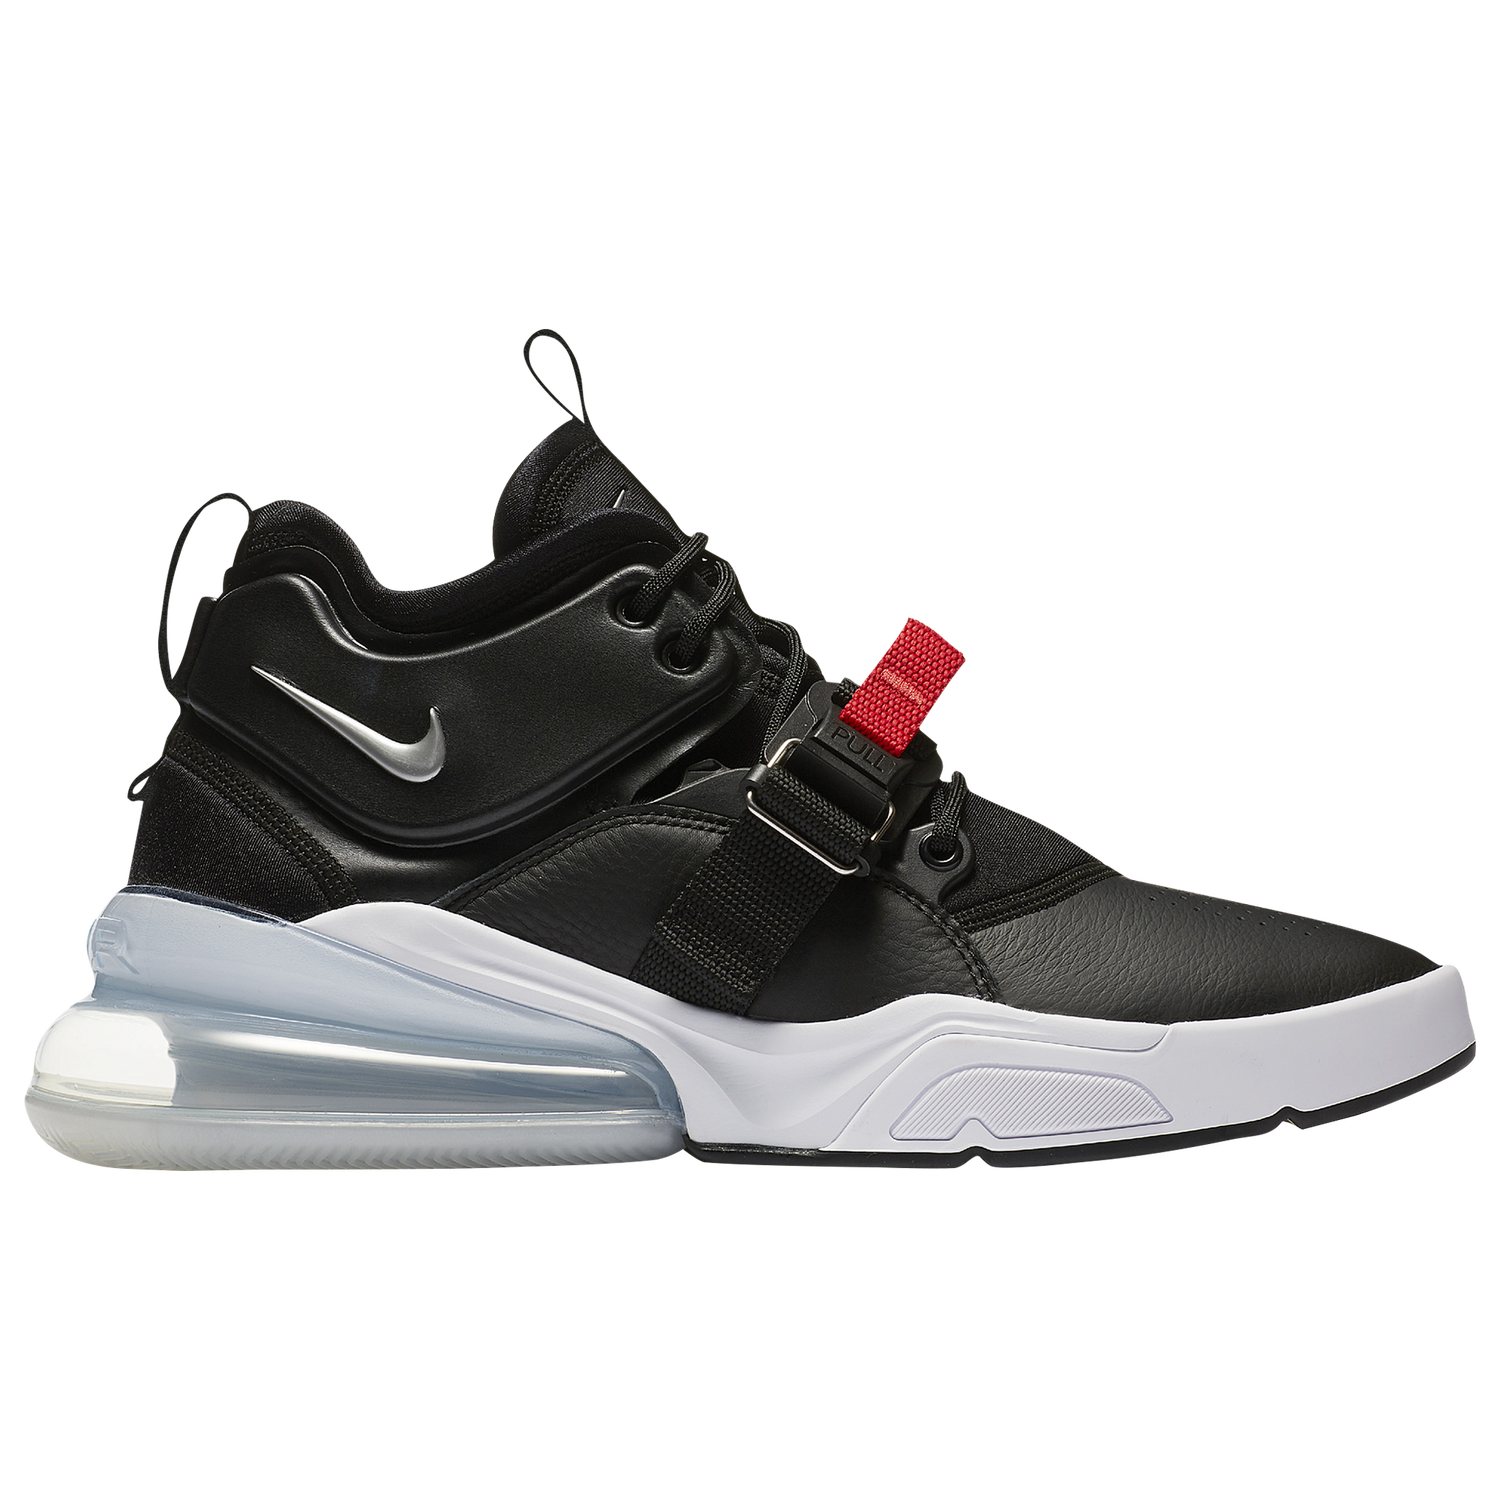 sneaker central release calendar foot locker - HD 1500×1500